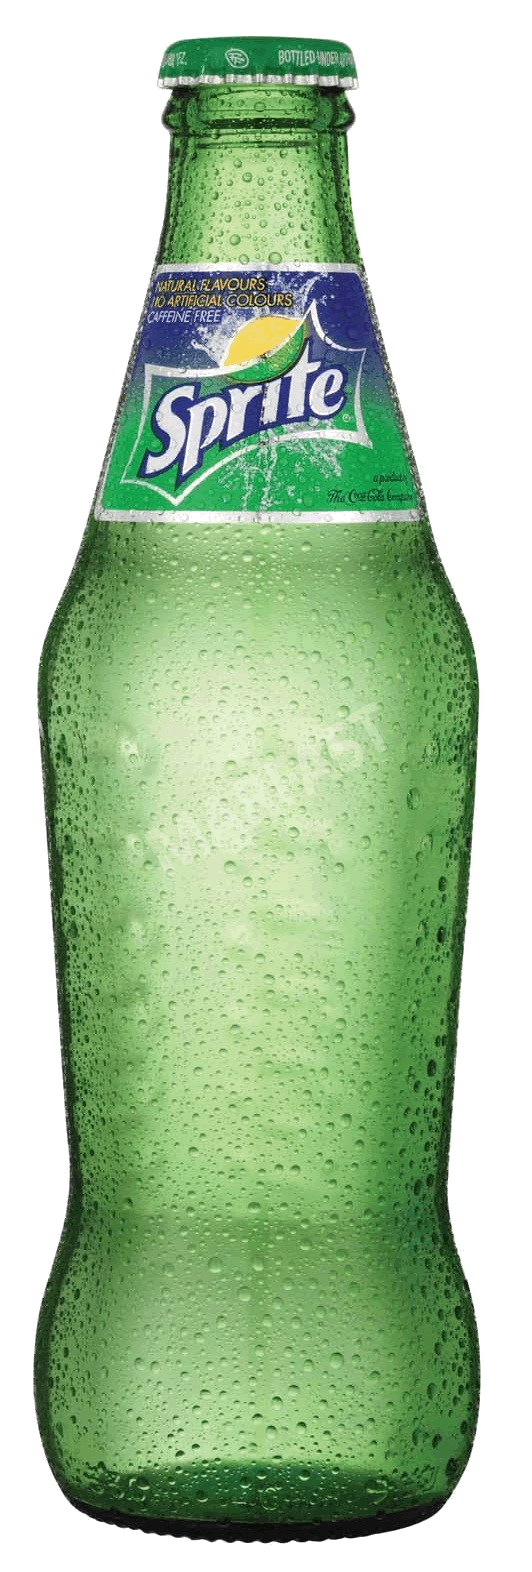 Green beer bottle png. Sprite images can image